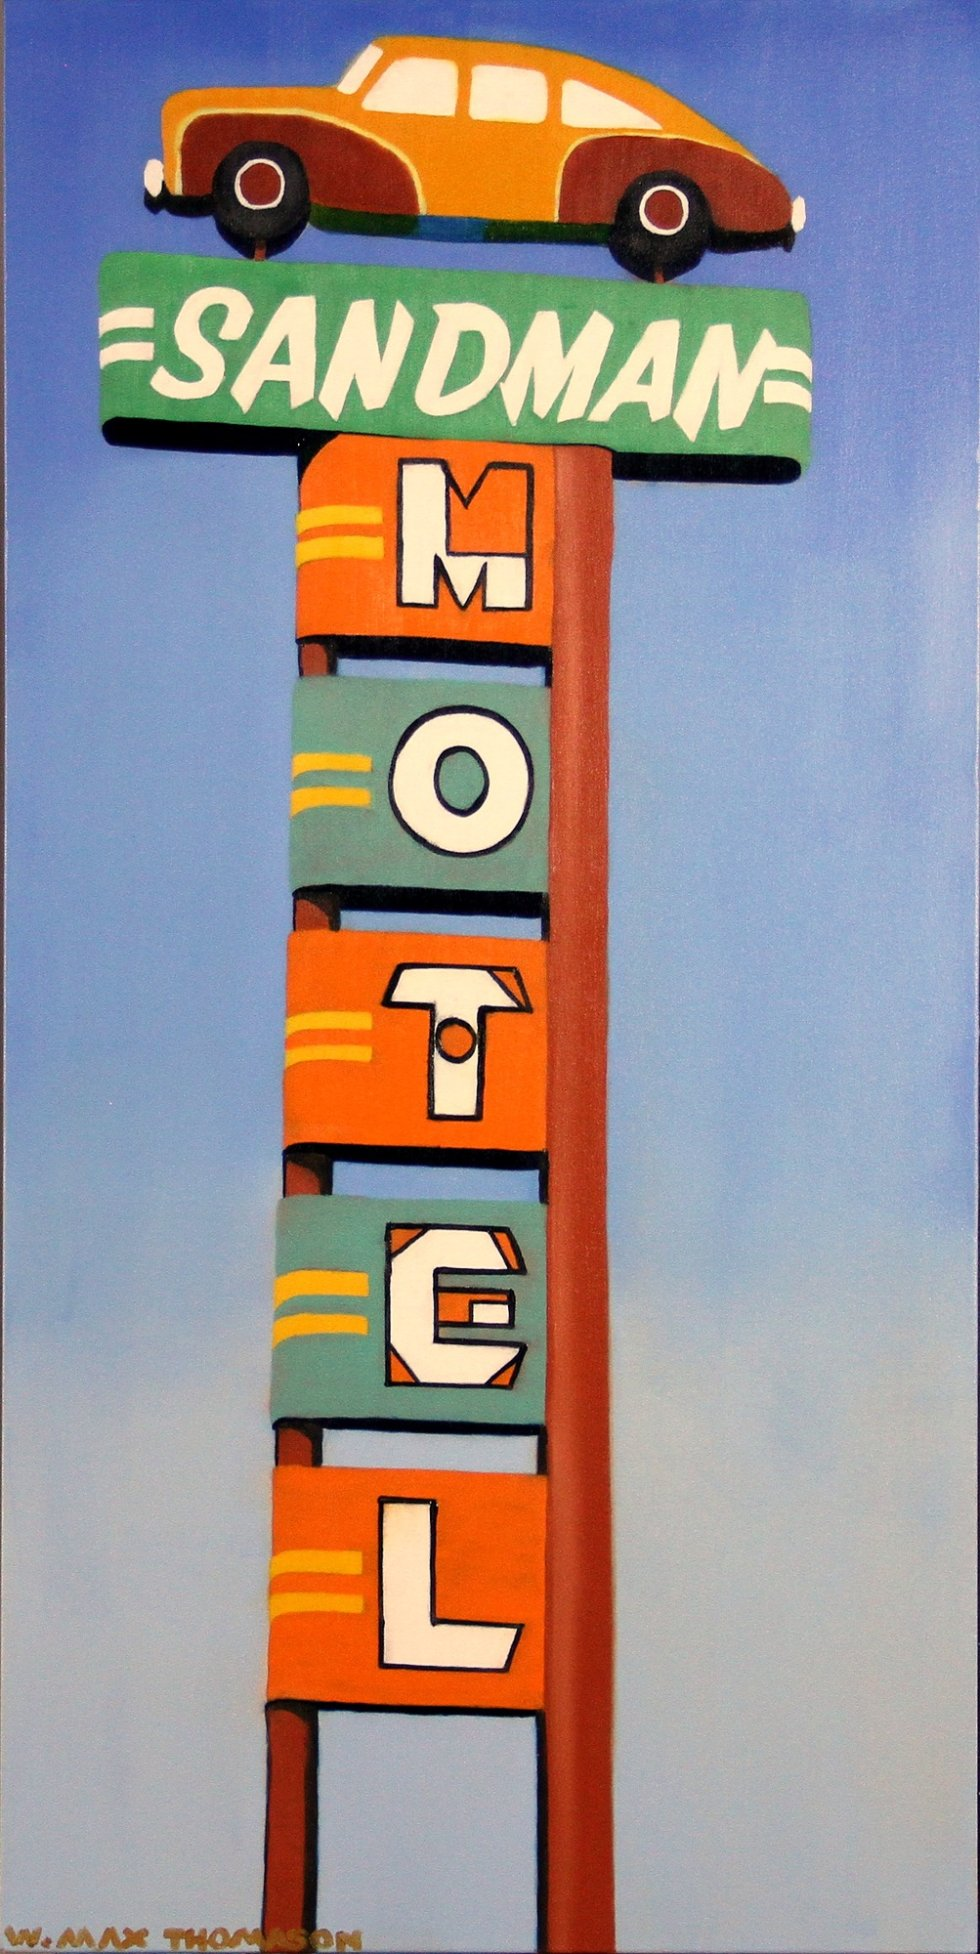 All That Matters is what We Leave Behind by W. Max Thomason - Third painting in a series I'm doing of old, neon motel signs. - art, blue, contemporary, fineart, green, orange, painting, realism, Yellow